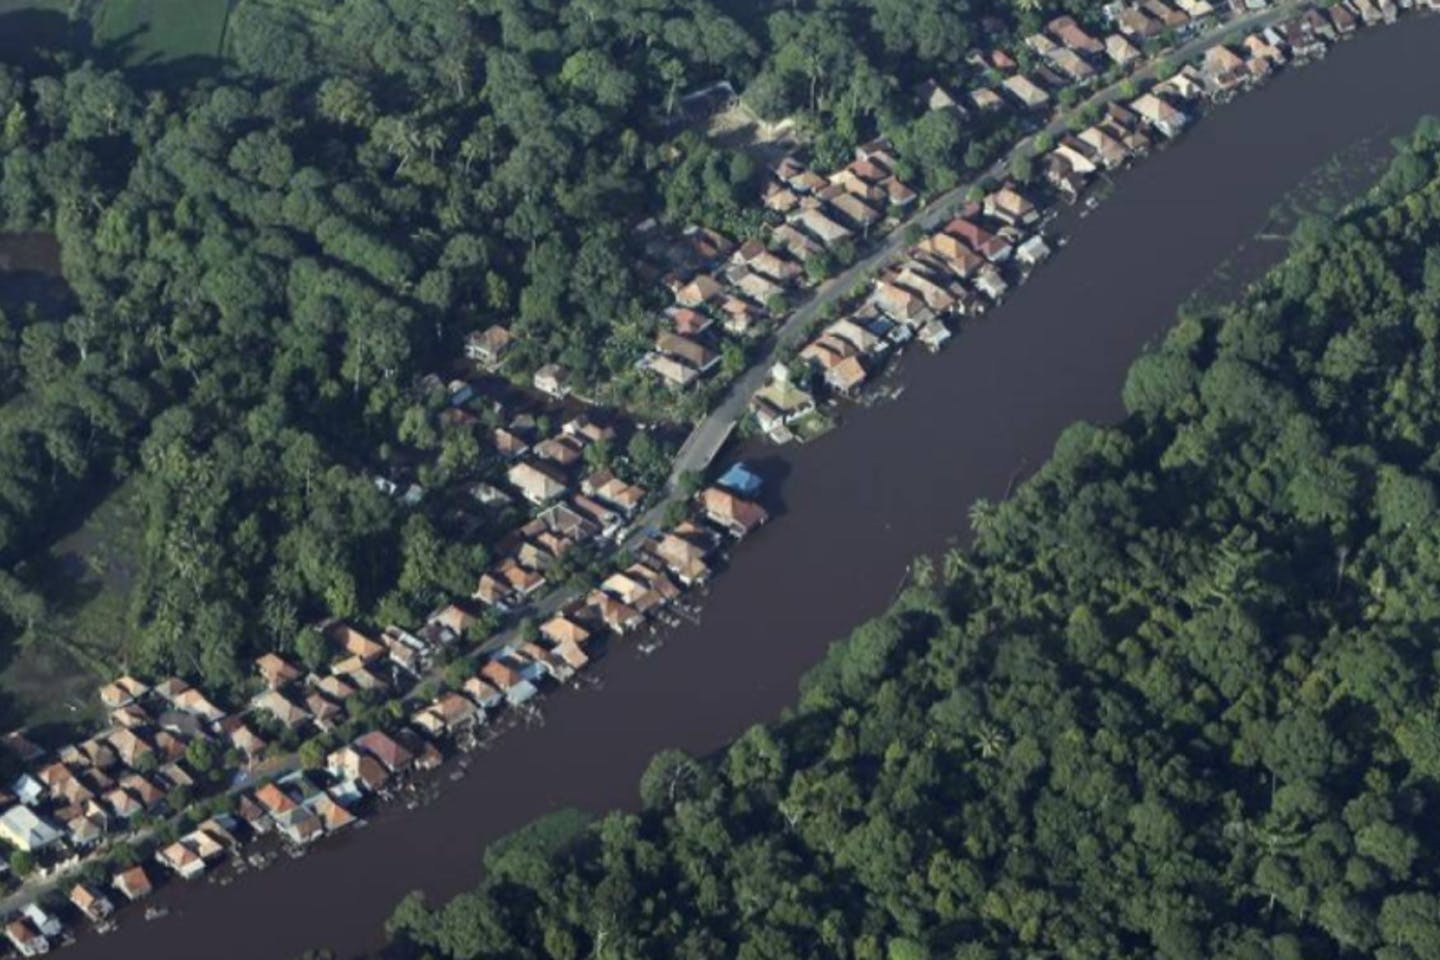 houses near a forest in Indonesia's South Sumatra province